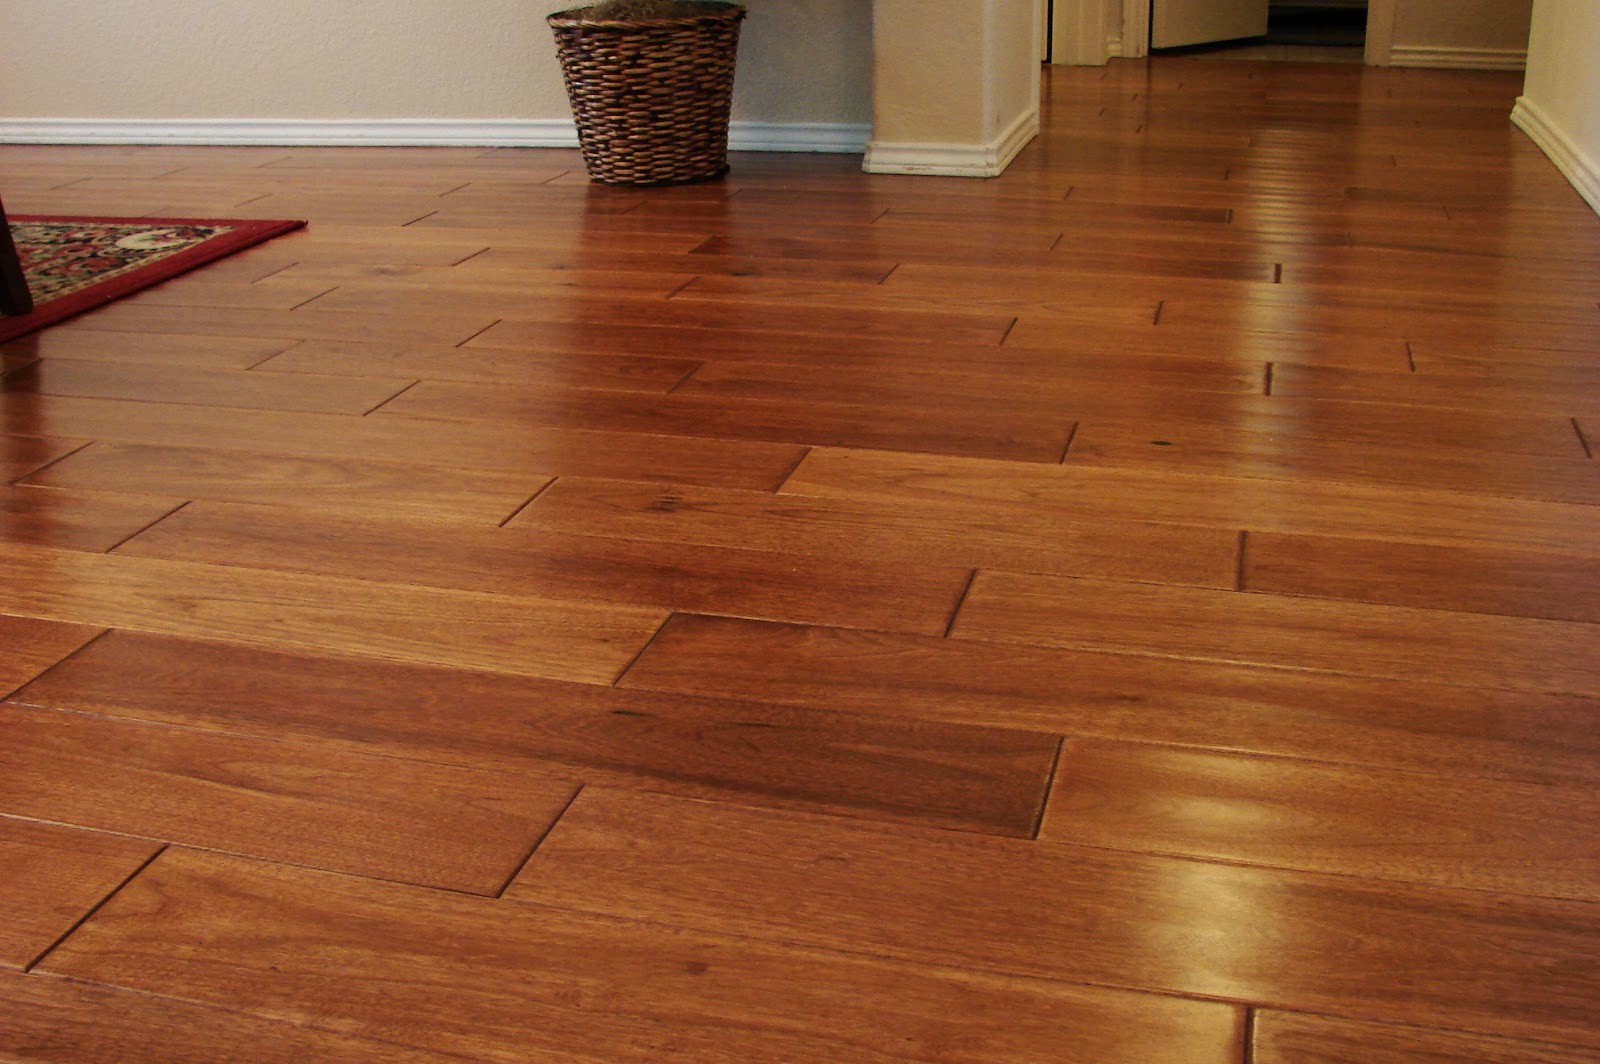 Wood_flooring_made_of_hickory_wood.jpg